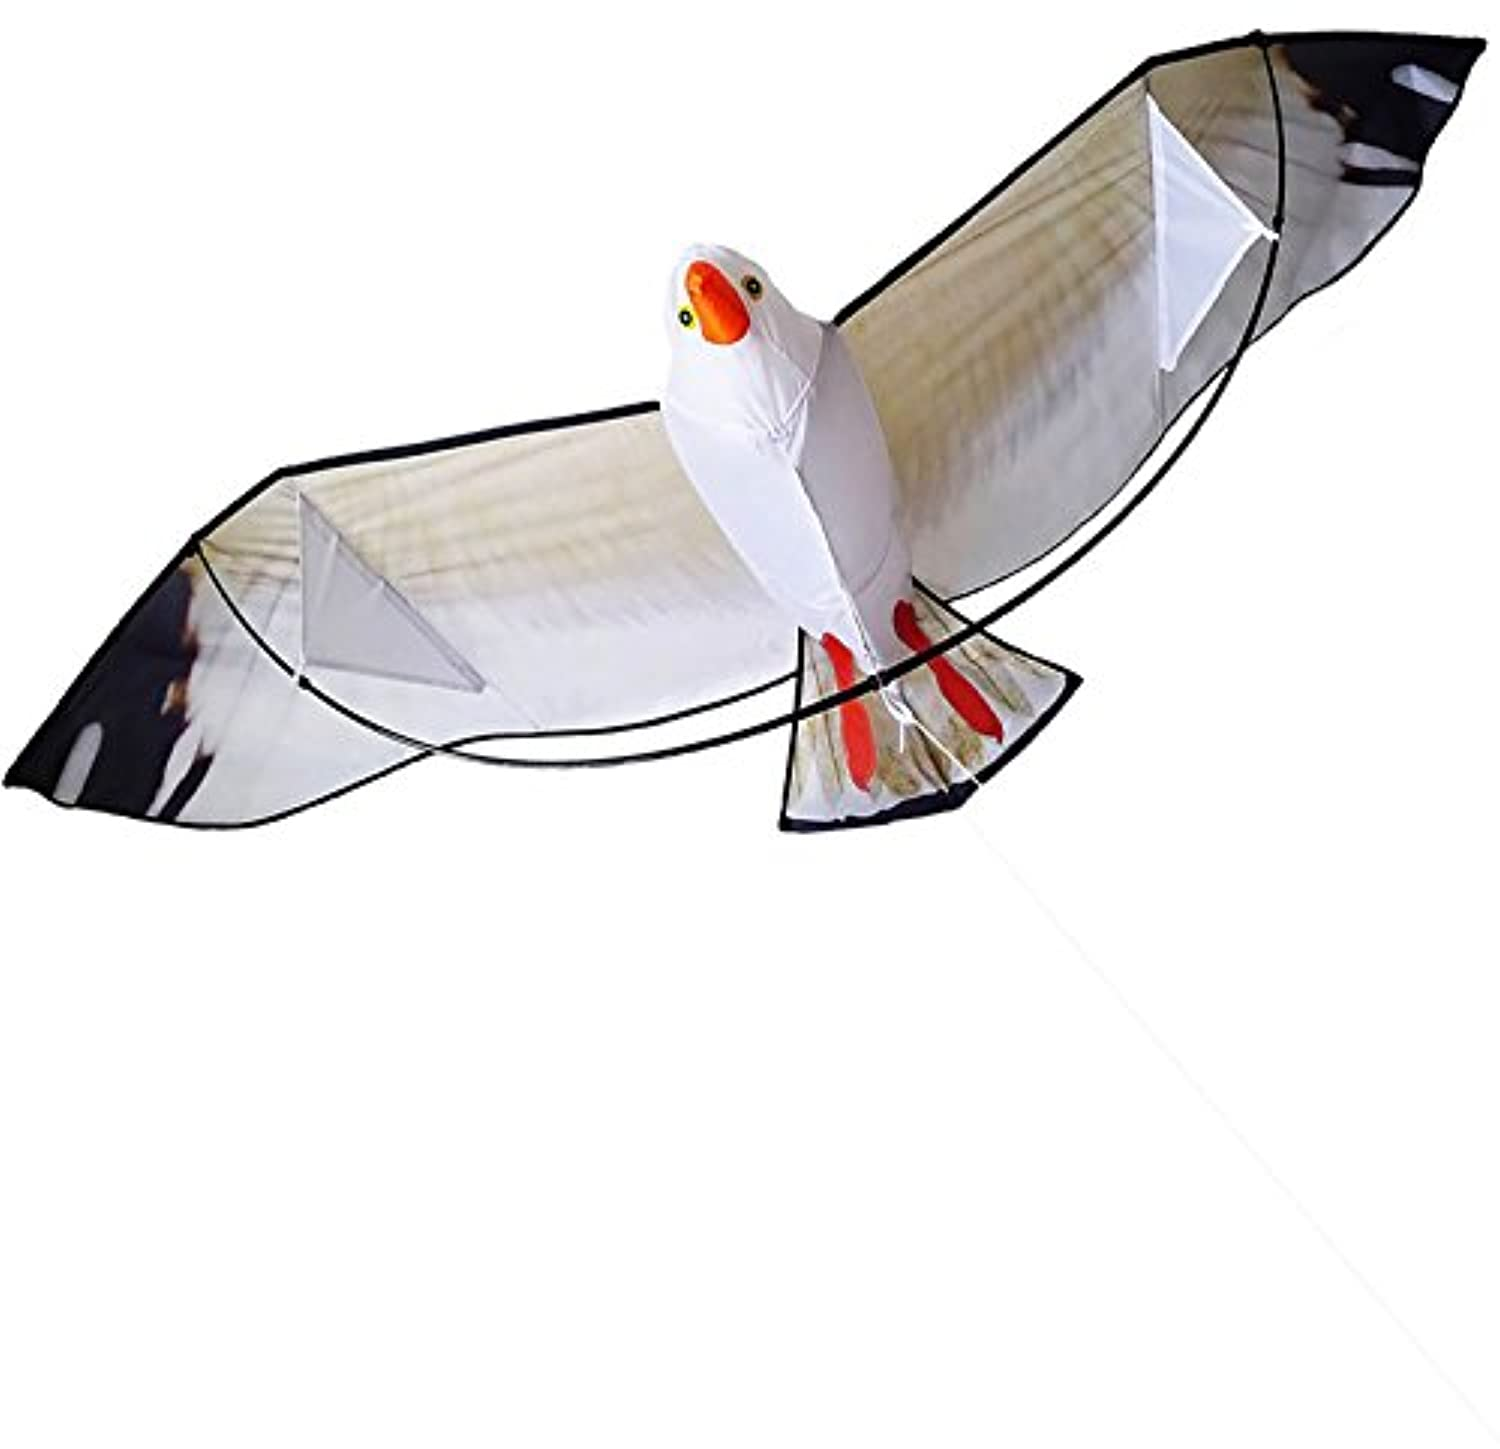 Kite 200cm x 80cm Huge Eagle Kites for Kids and Adults Nylon Kite 3D Design Easy to Fly, One of the Best Outdoor Toys for the Beach,Park and Family Games Activities,Comes with String and Handle